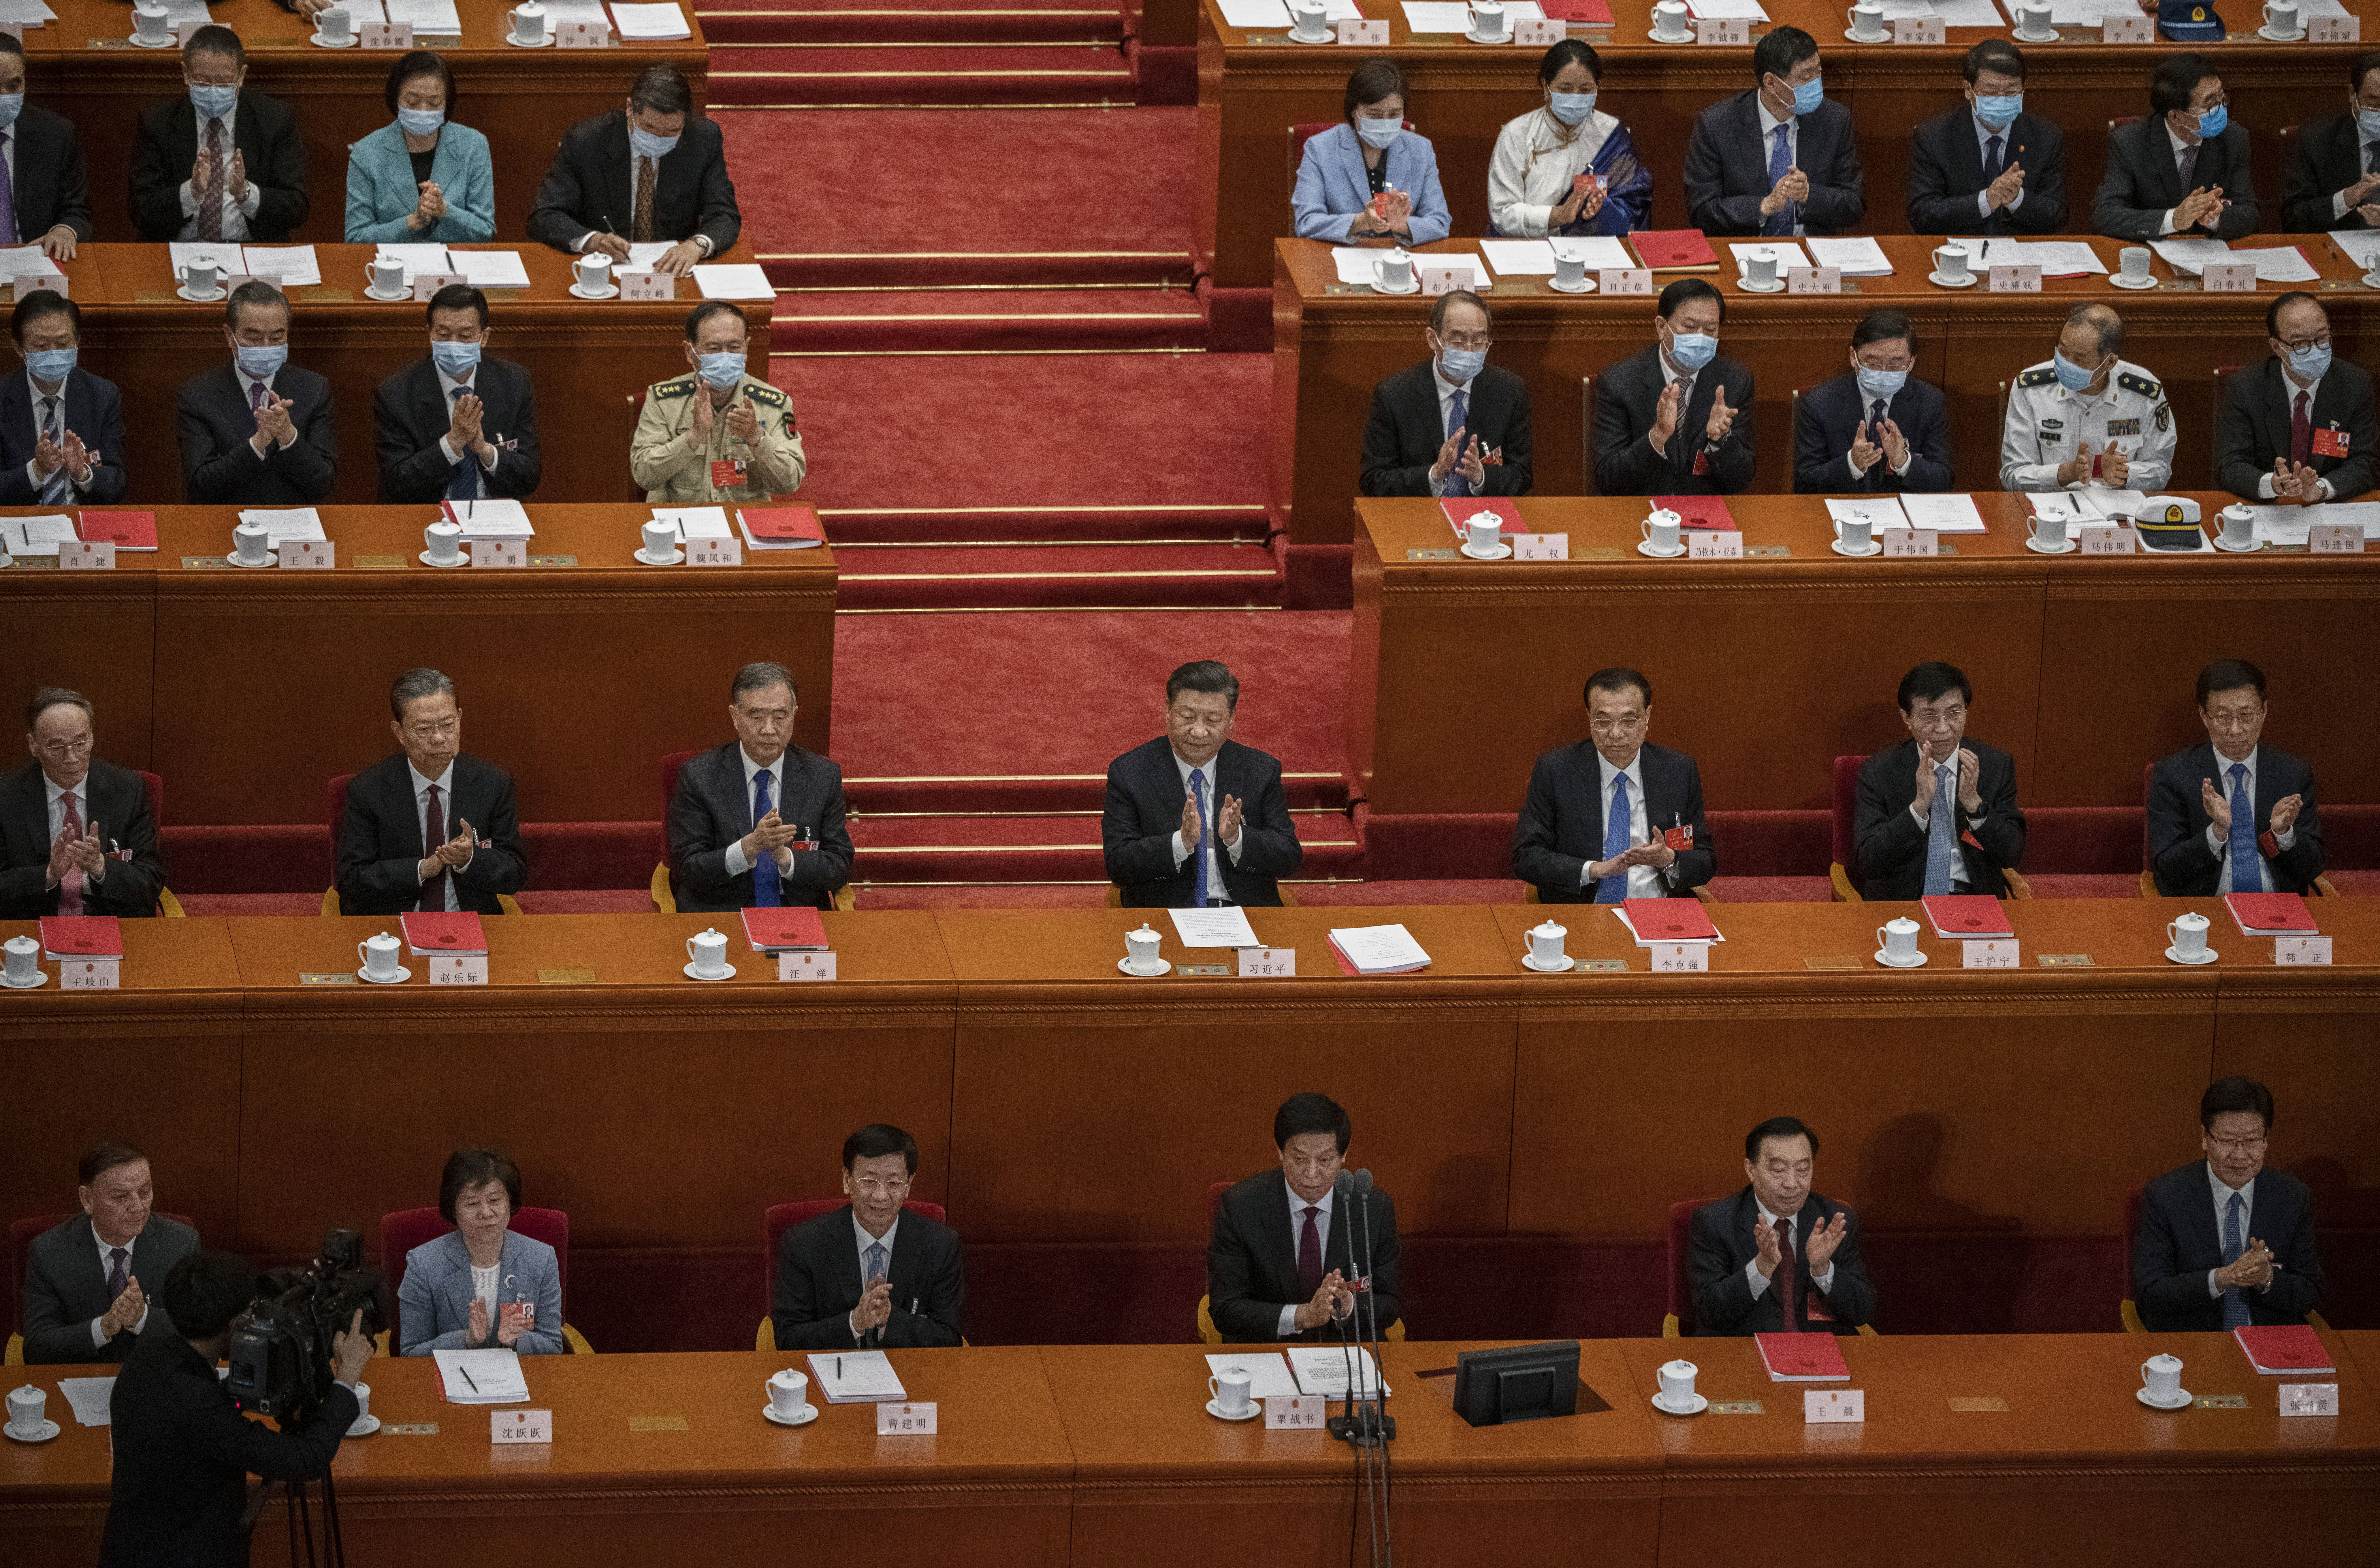 Chinese president Xi Jinping, center, and other members of the Chinese government applaud during the closing session of the National People's Congress at the Great Hall of the People in May in Beijing, China. (Kevin Frayer/Getty Images)